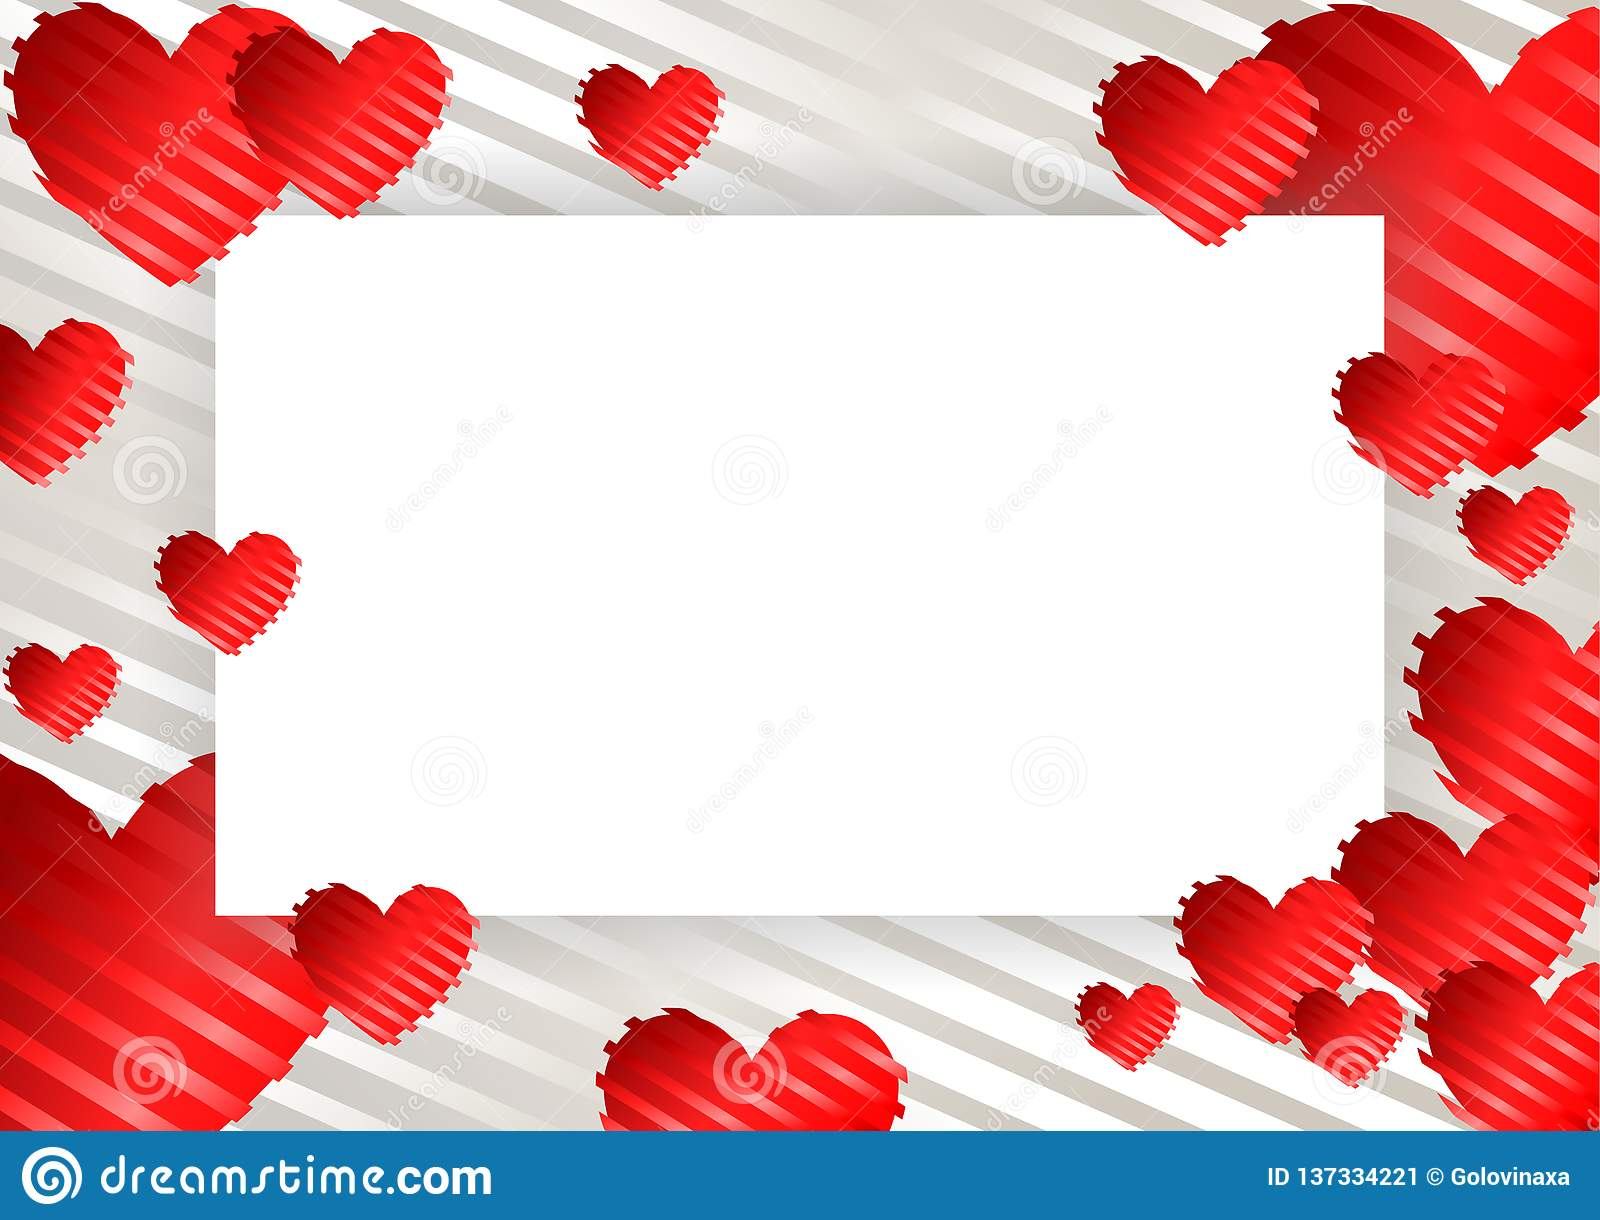 frame, border with hearts